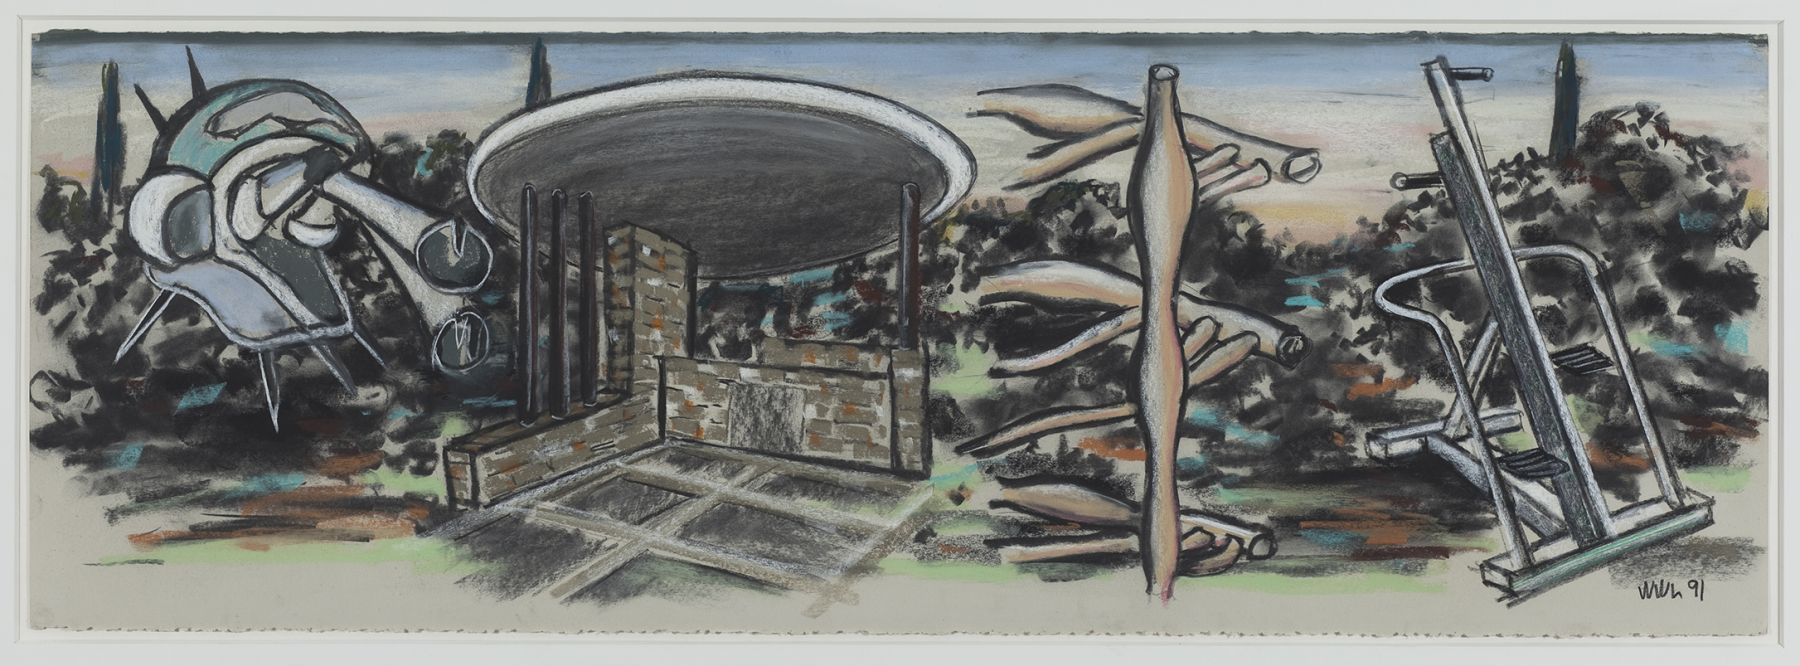 William Leavitt Landscape with 4 Objects, 1991